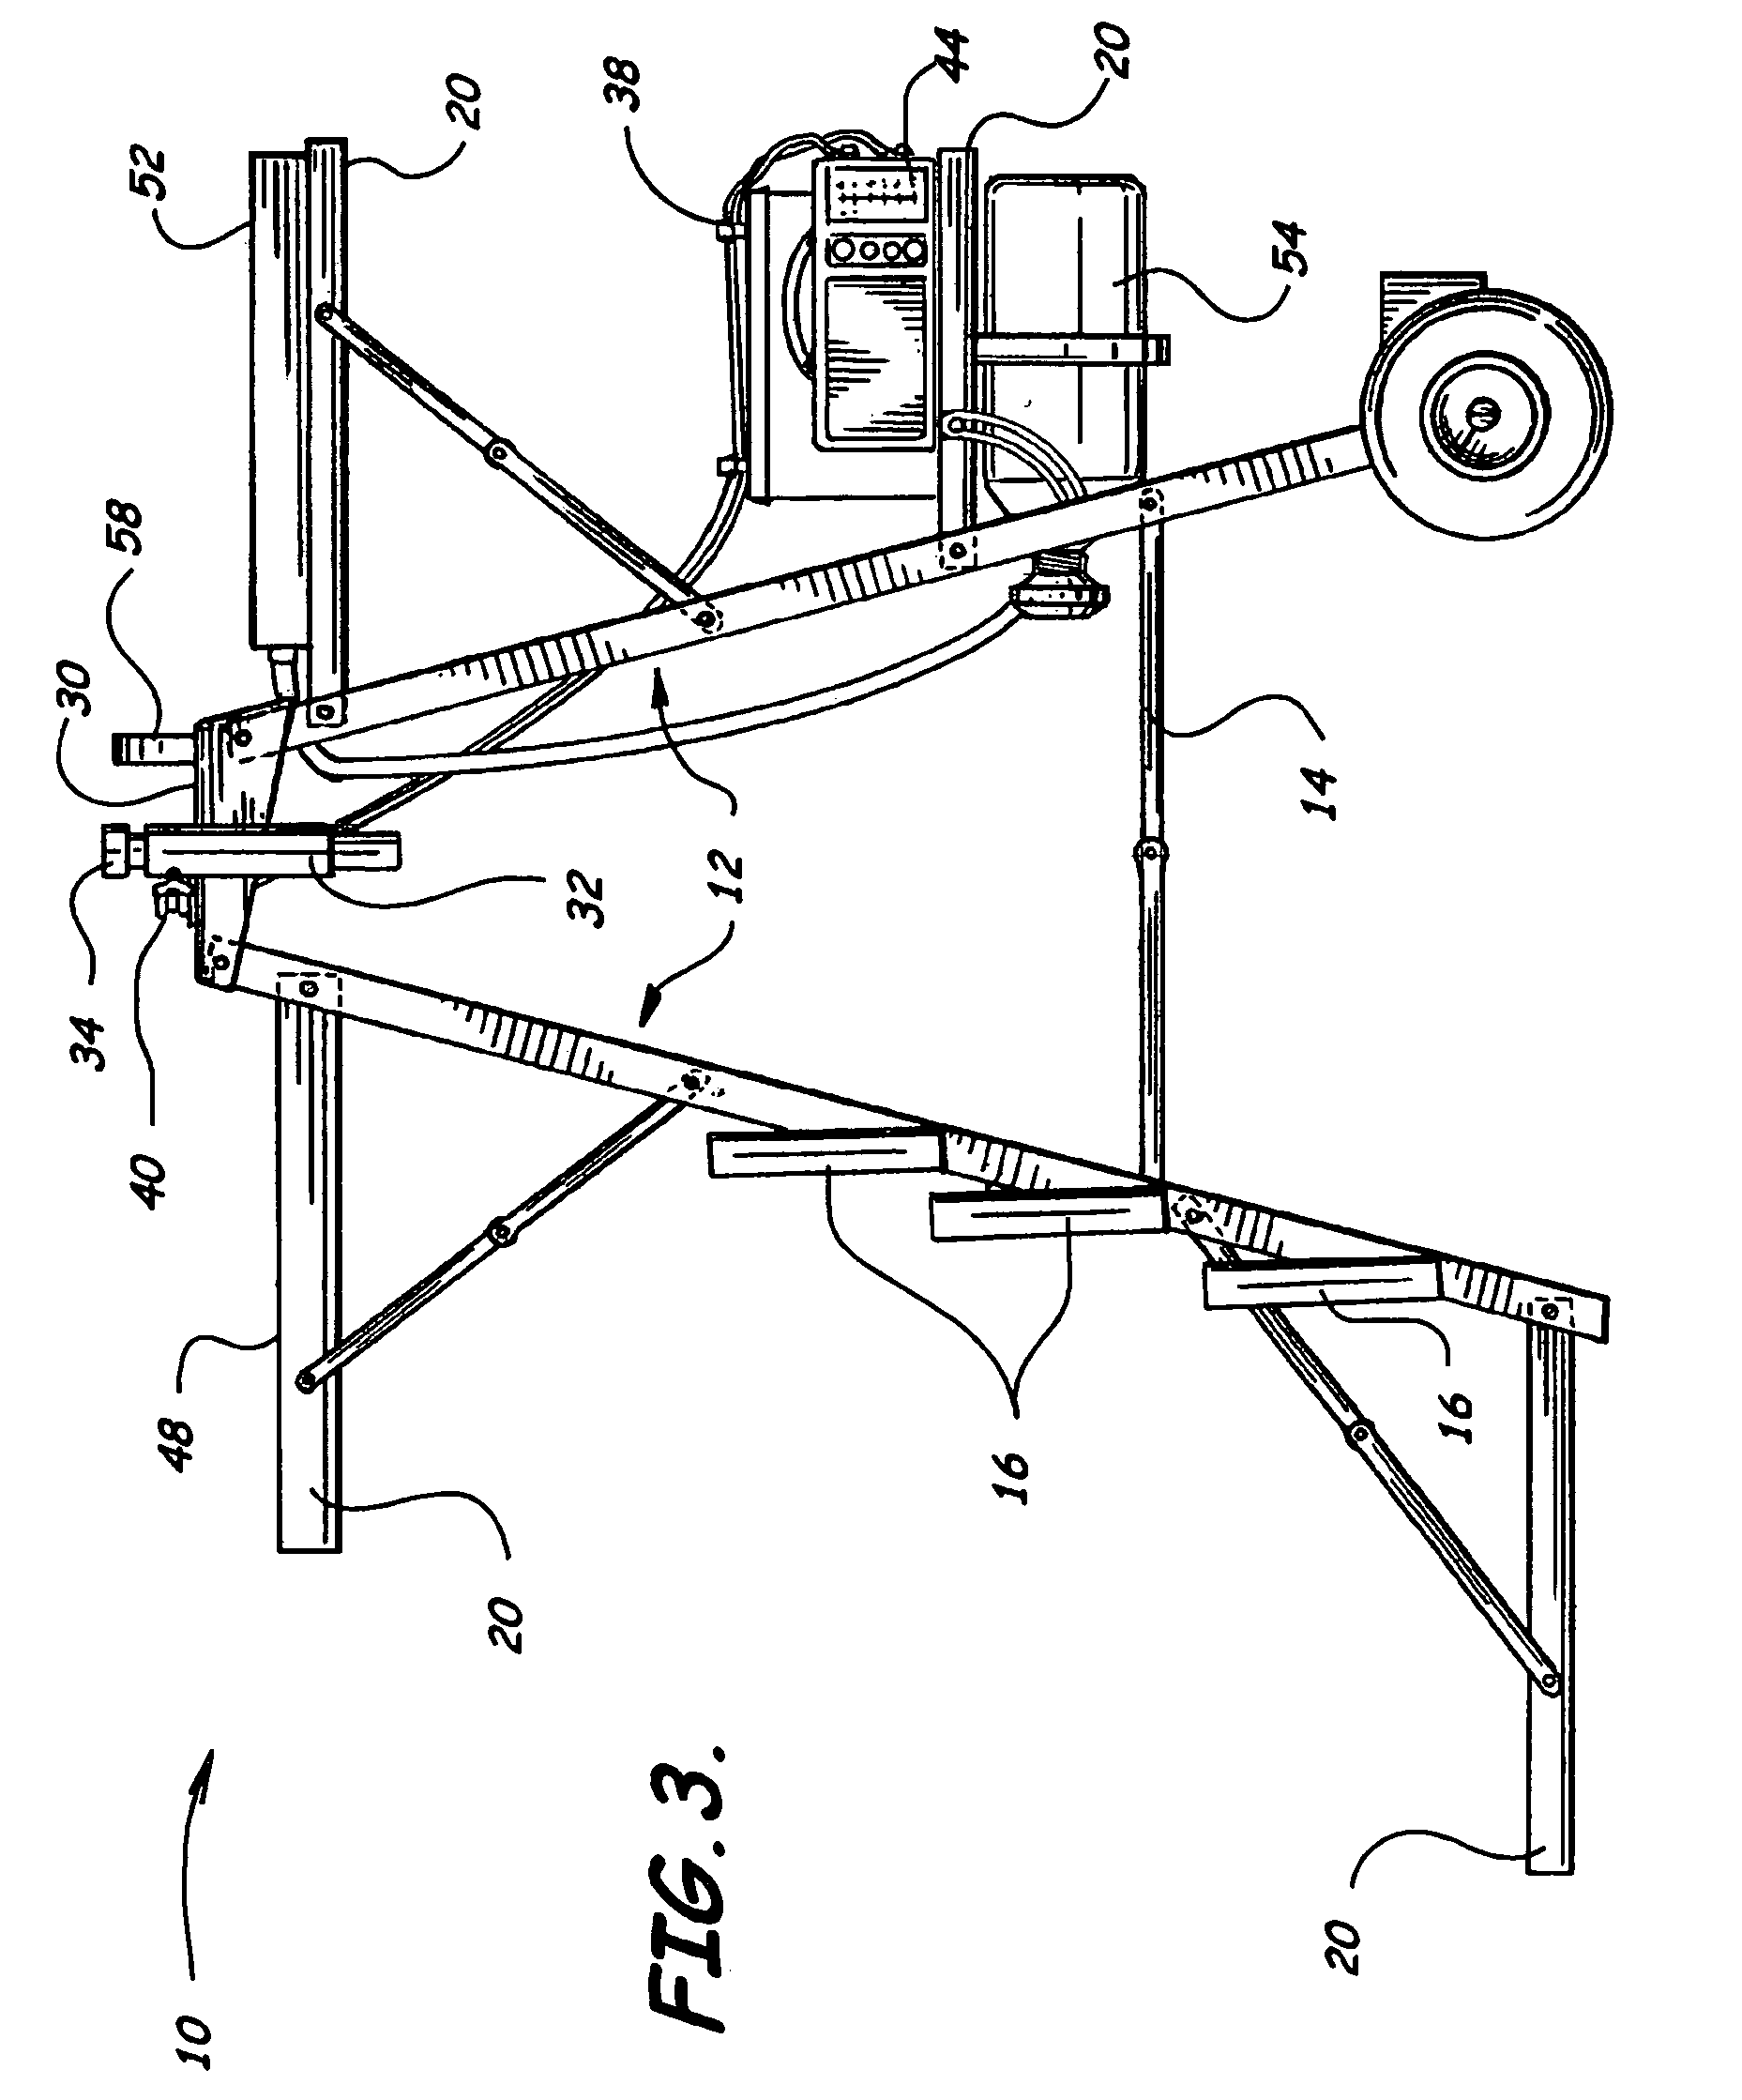 Patent us6883267 mobile fishing caddy google patenten for Fishing caddy bucket